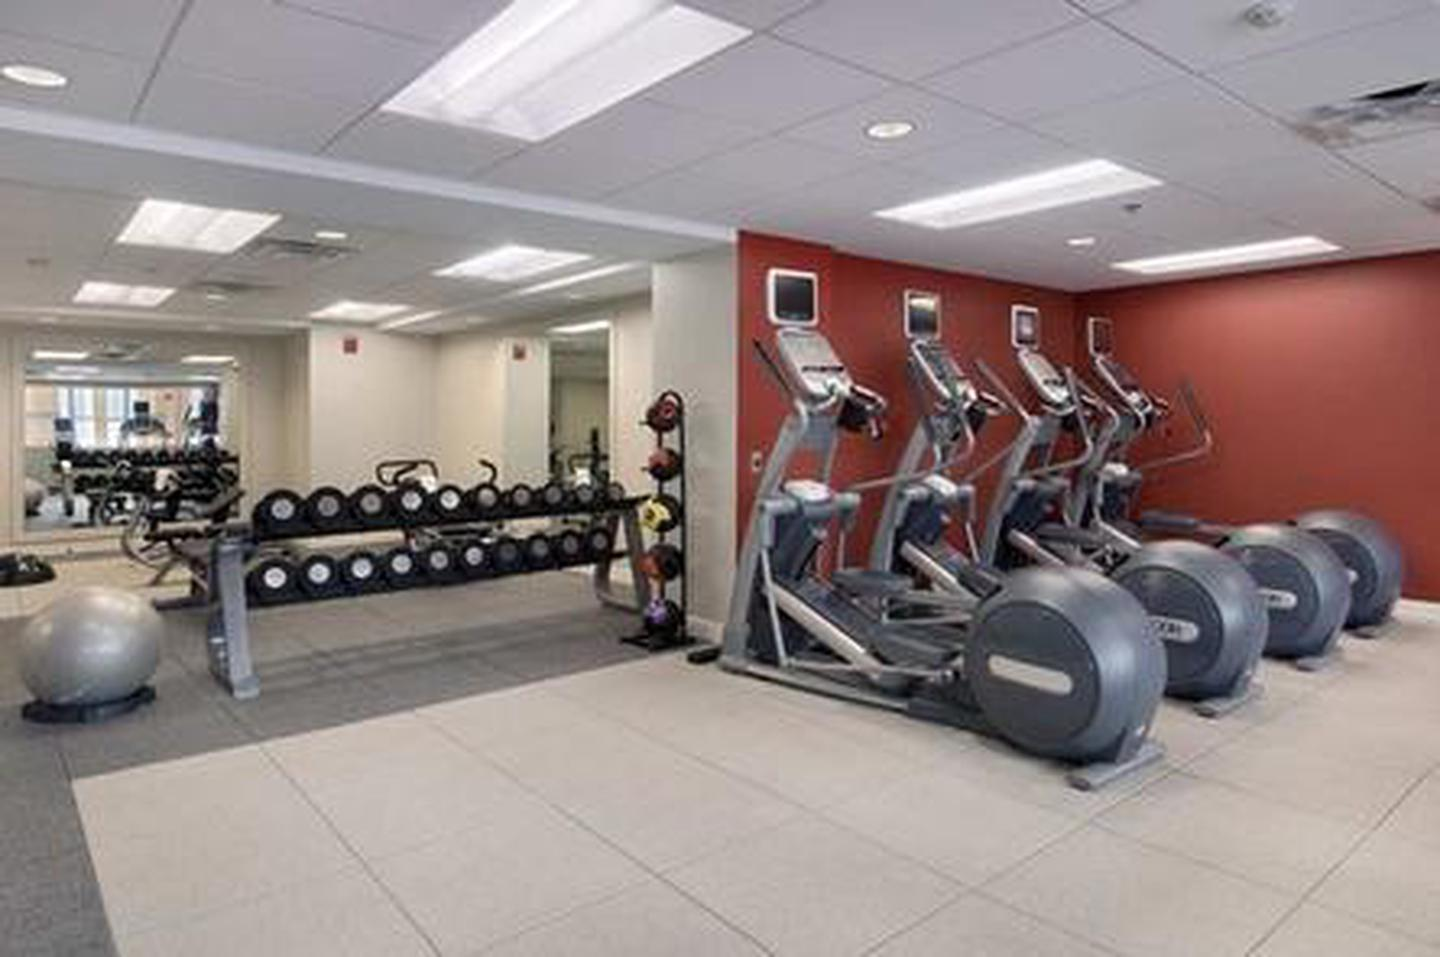 Amenities In addition to a fully stocked fitness center including machines and free weights, guests can enjoy luggage storage, a gift shop, local area transportation and more.